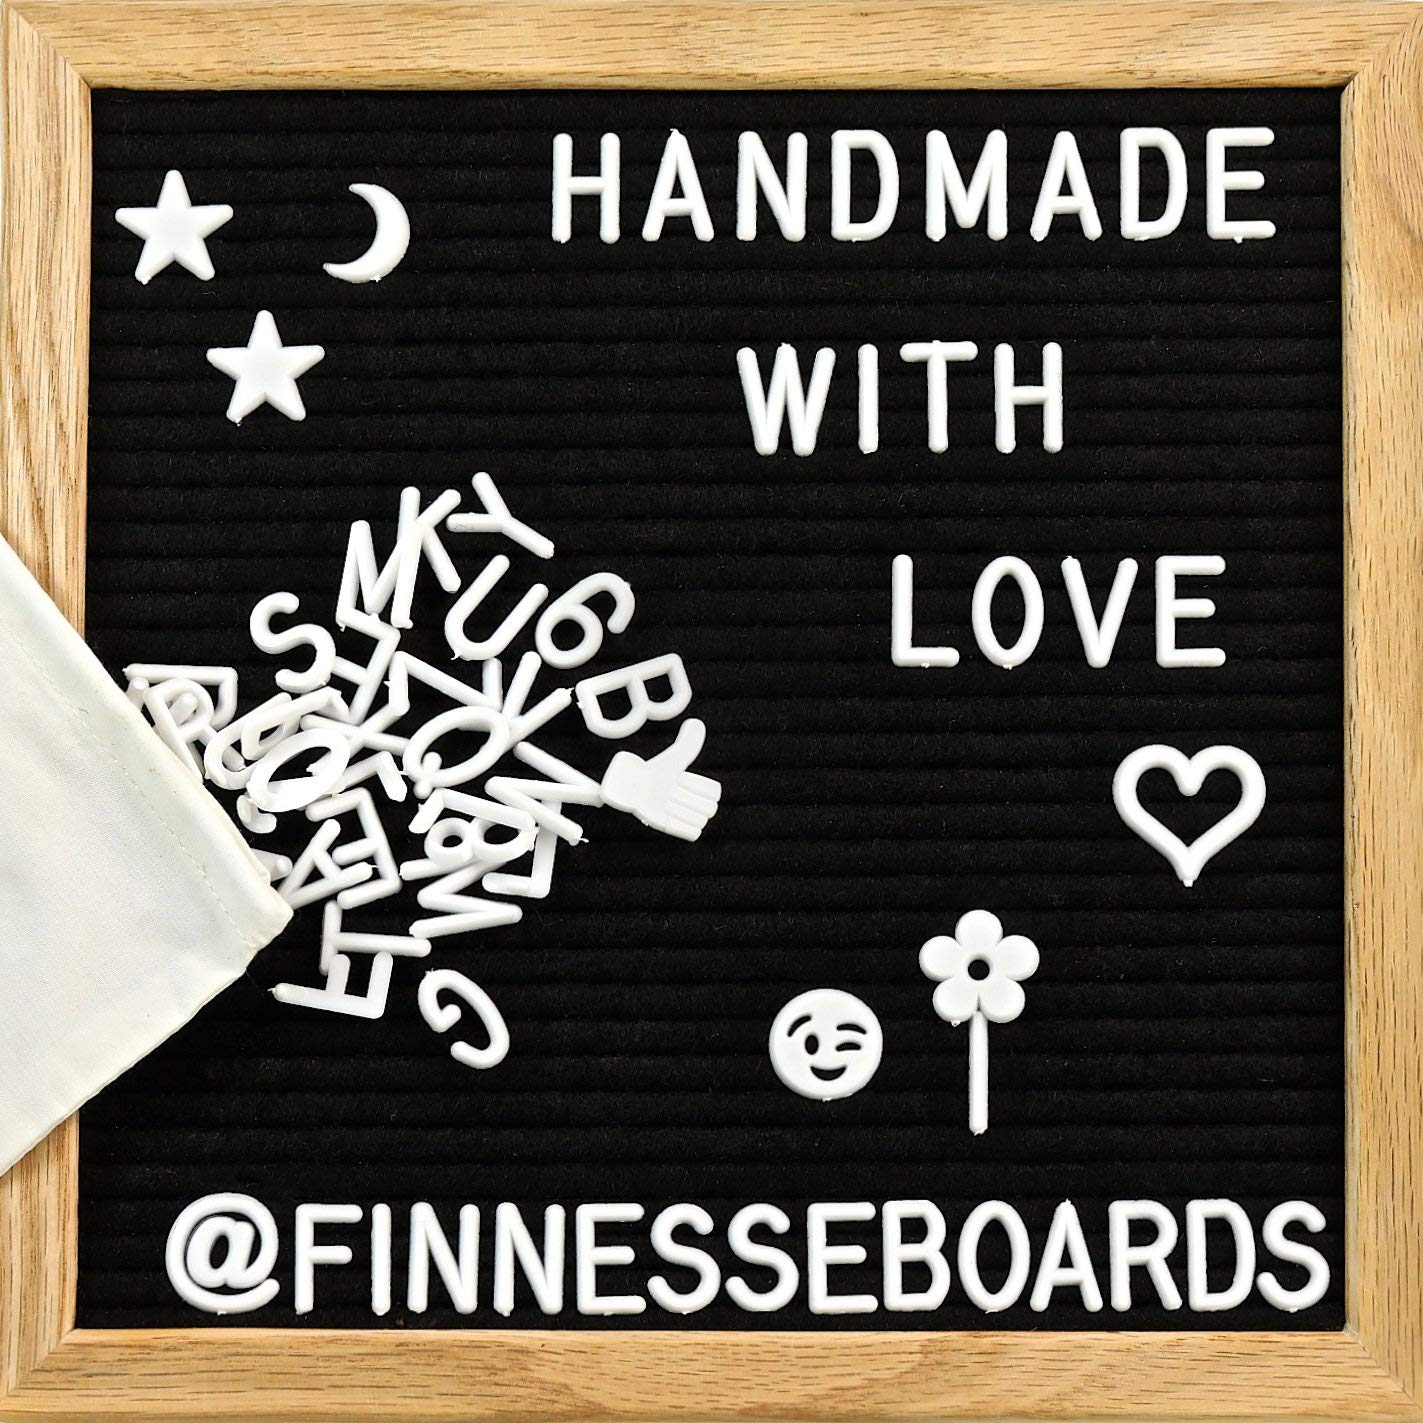 Black Felt Letter Board 10x10 Inches with 346 Changeable Letters, Numbers, Emojis To Display Messages, Thoughts, Remainders- Premium Oak Wood Frame, Wall Mount Hook, Canvas Bag Camtoms board-10x10-black